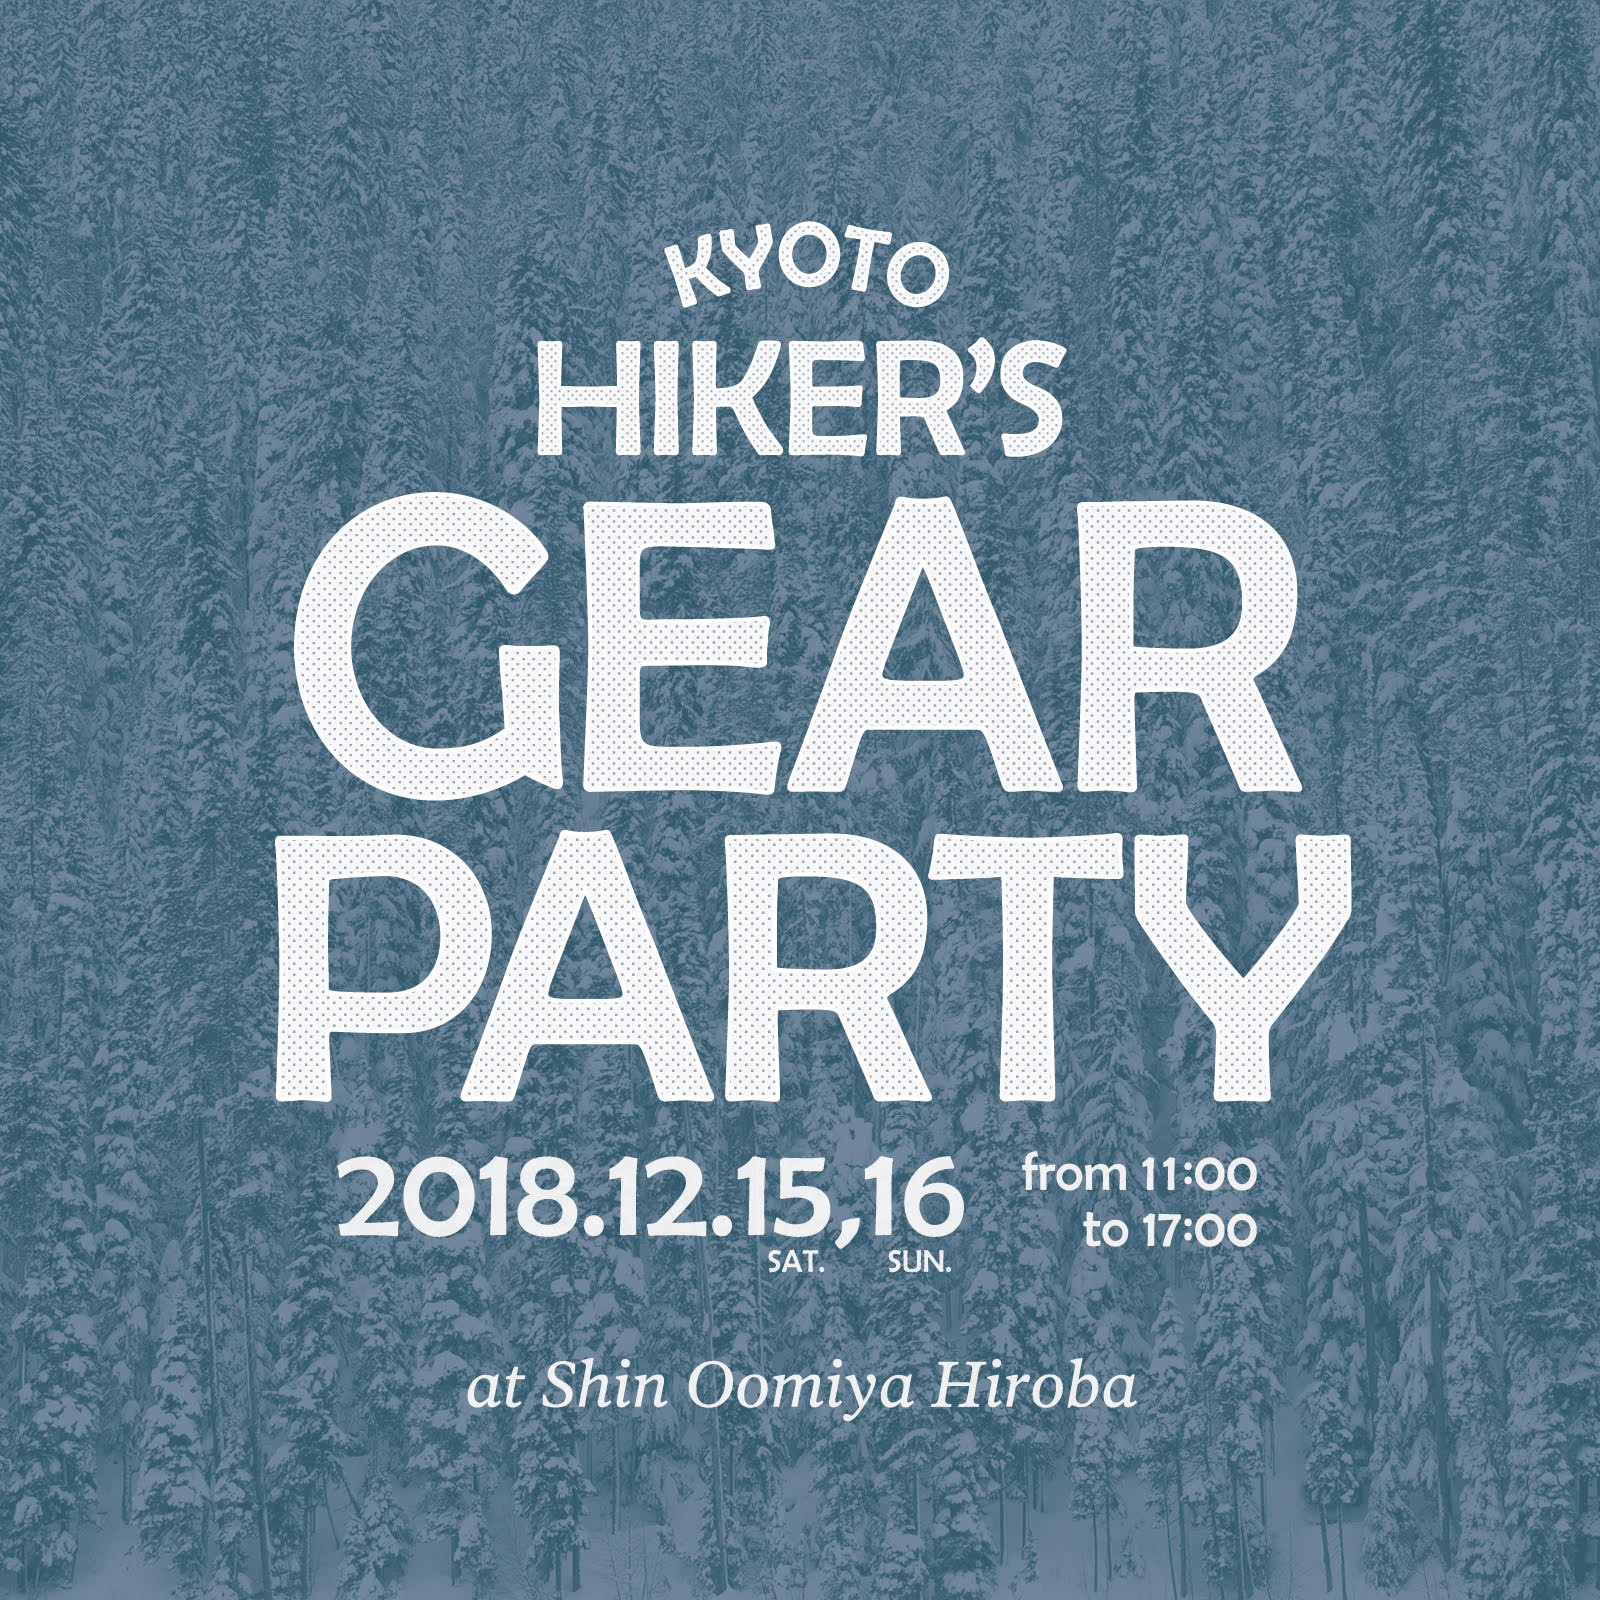 KYOTO HIKER'S GEAR PARTY出展